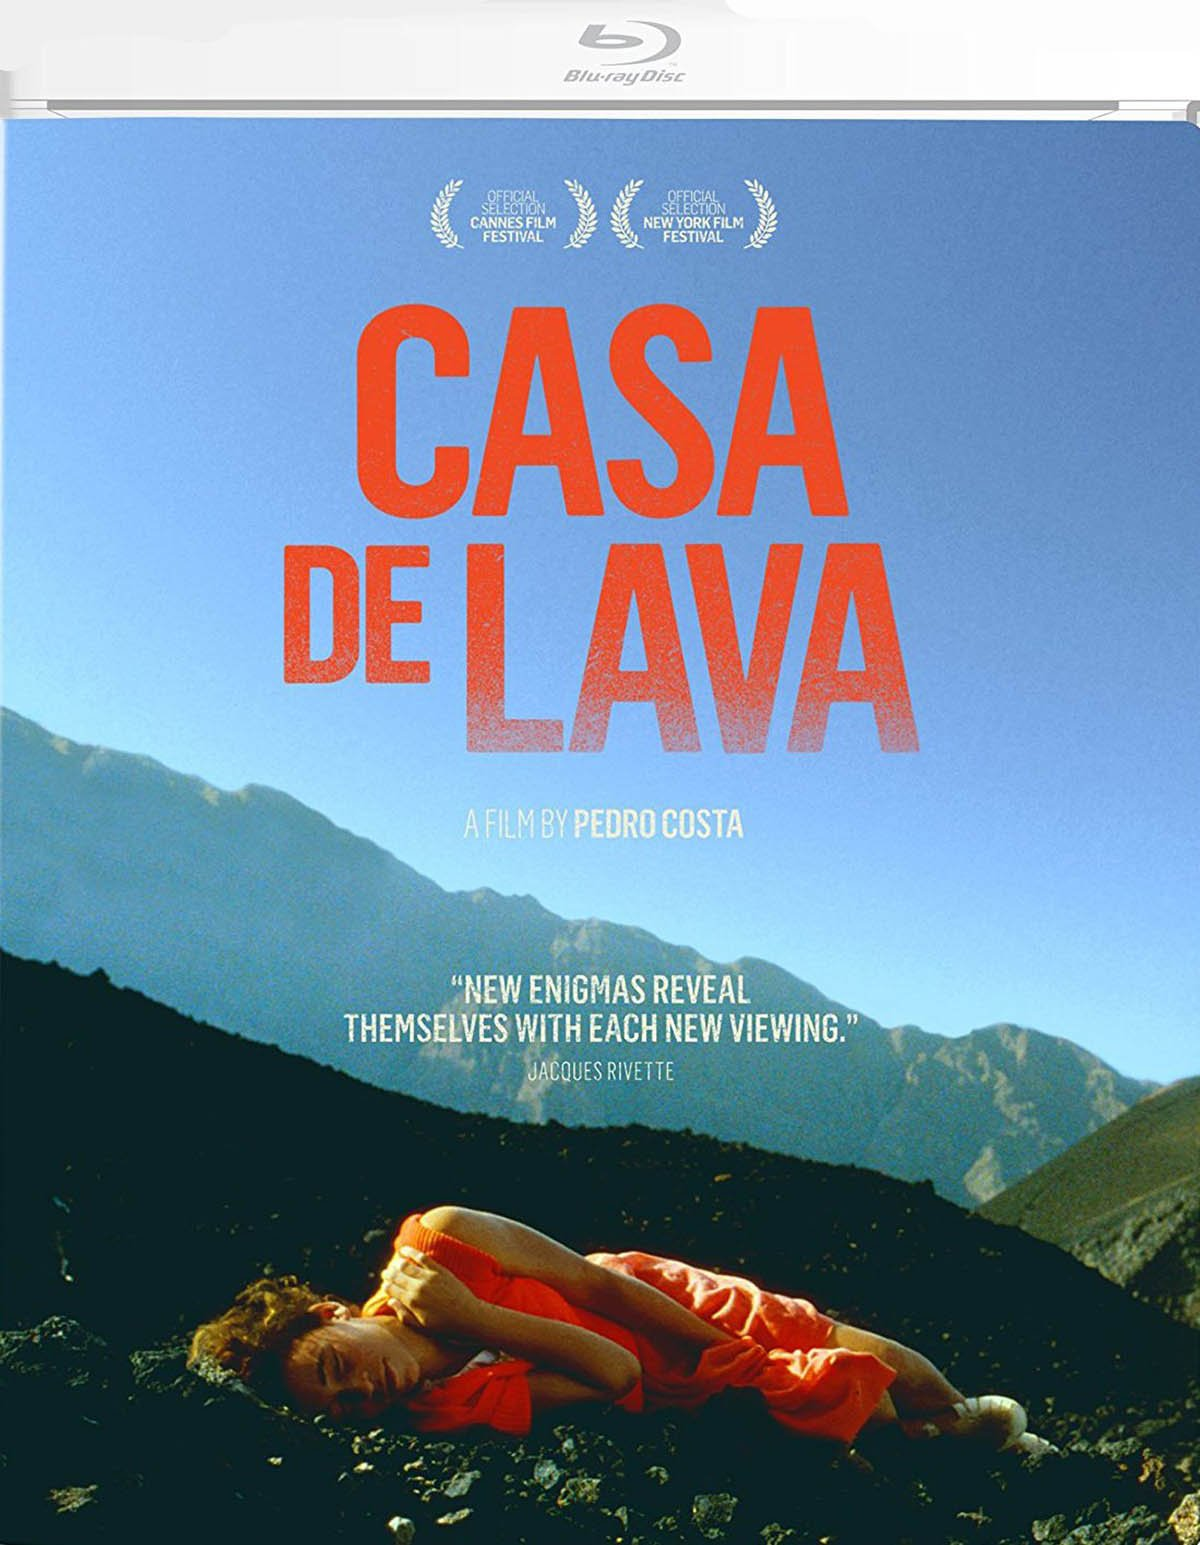 A Casa Di Babette review: pedro costa's casa de lava on grasshopper film blu